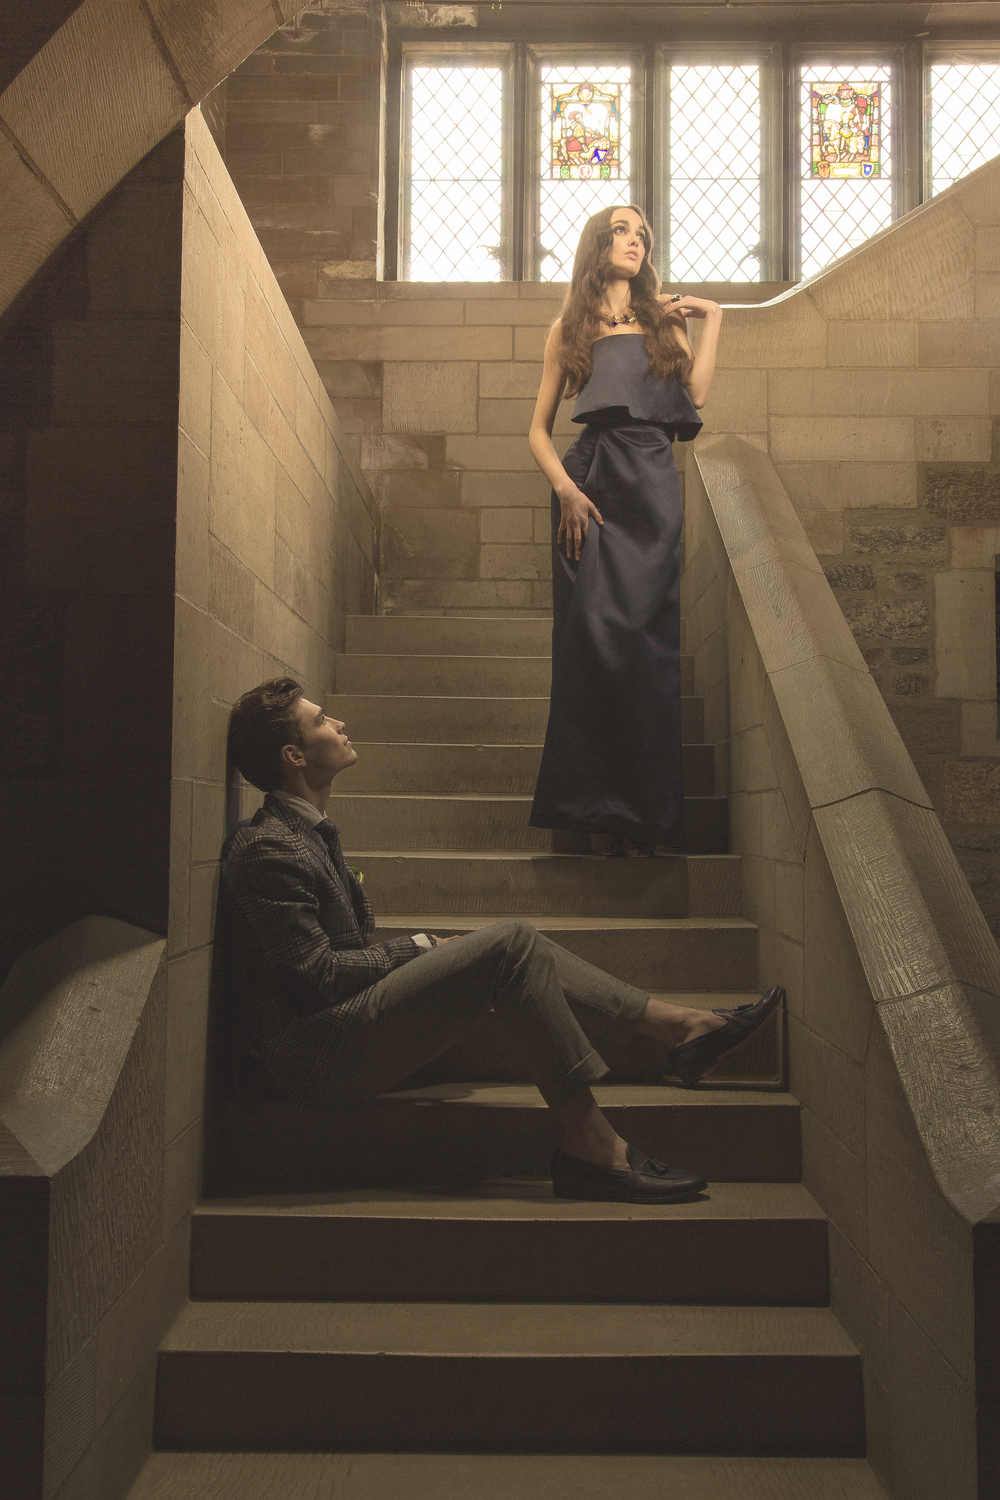 Fashion-NY-Couple-Stairs-Eric Auffhammer-.jpg